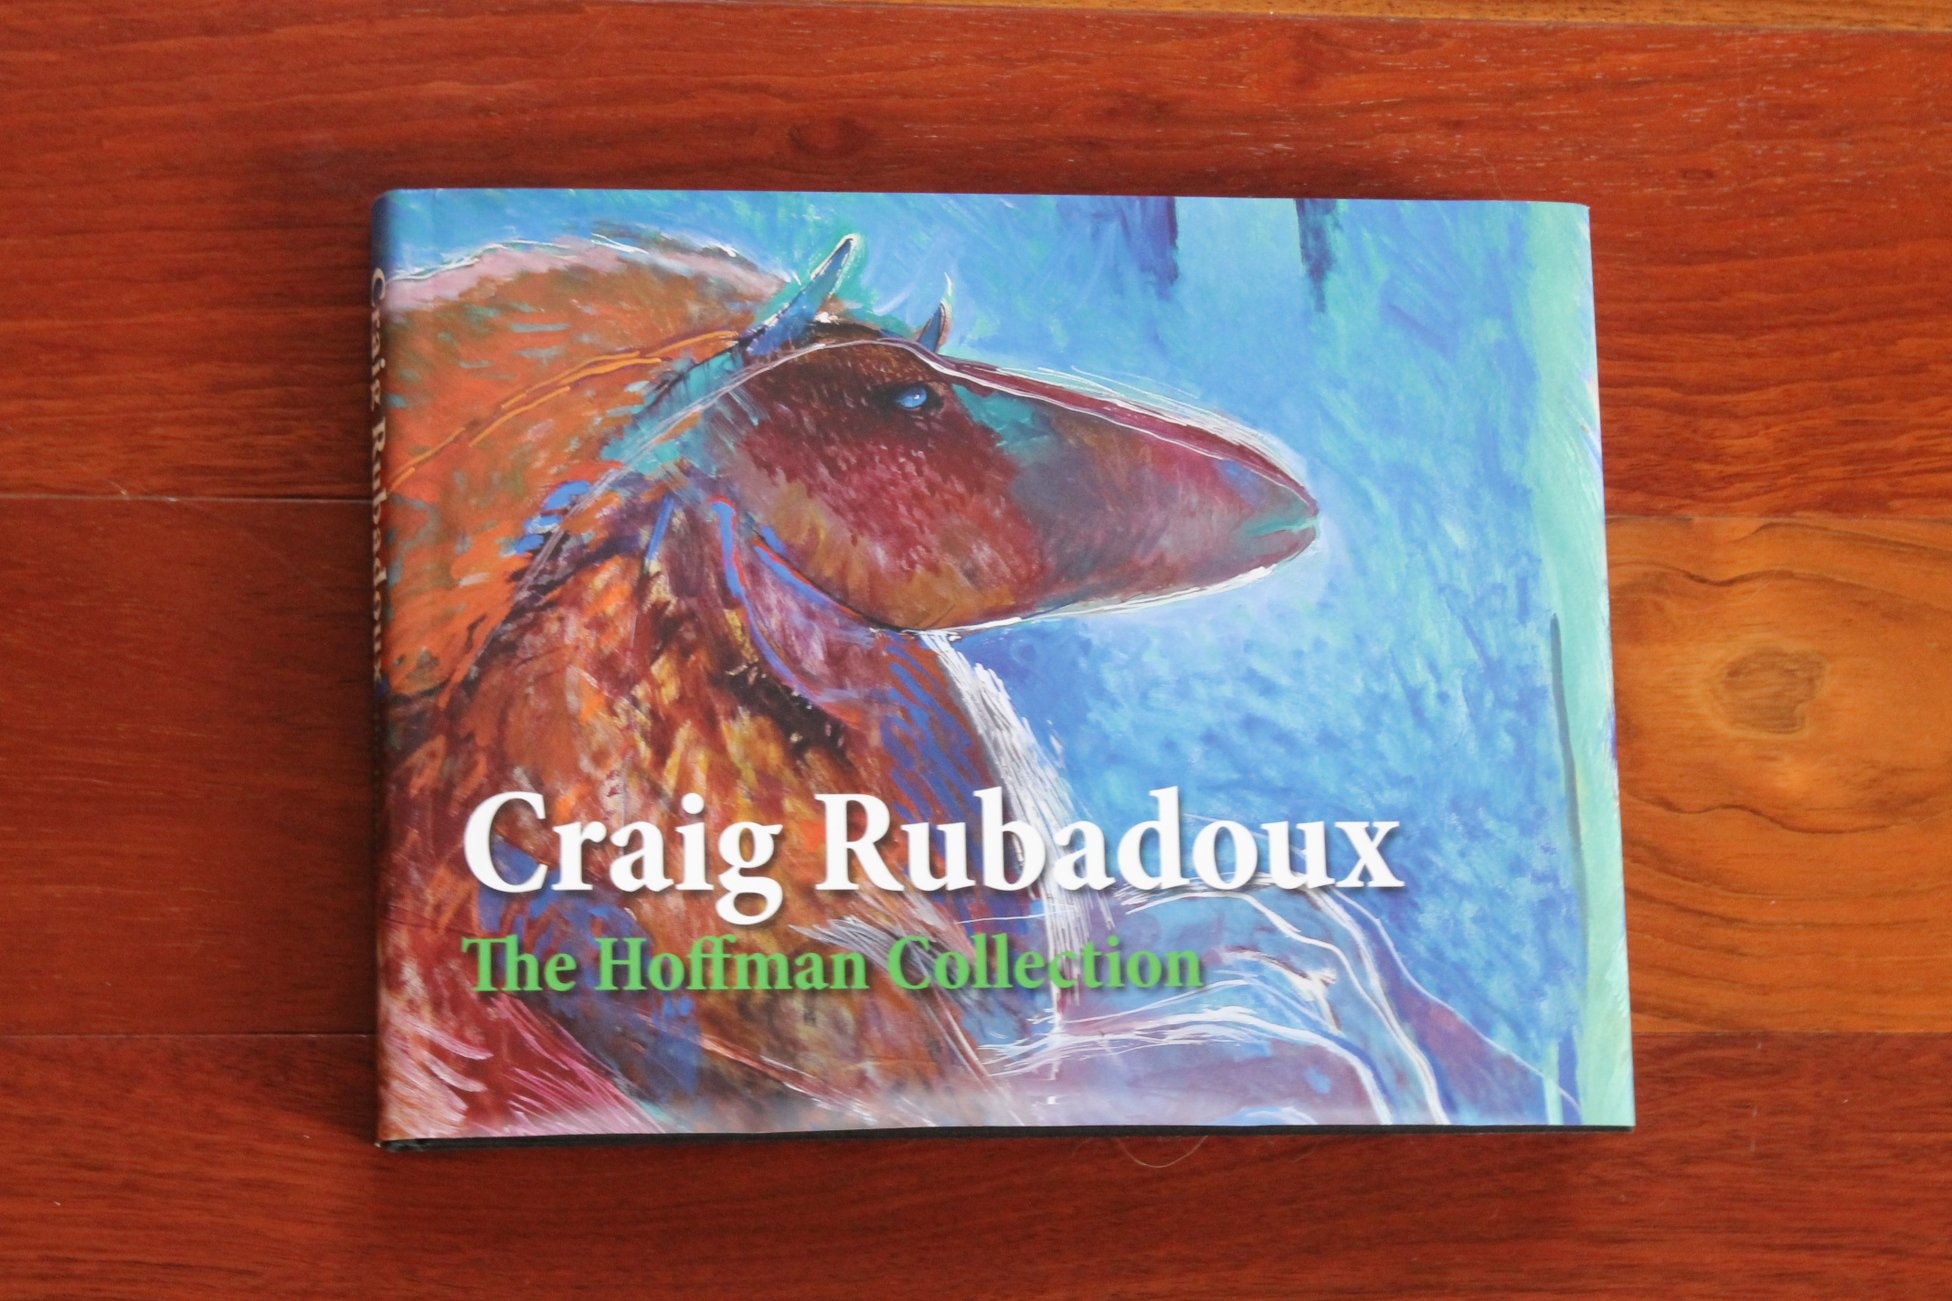 Craig Rubadoux - The Hoffman Collection Book